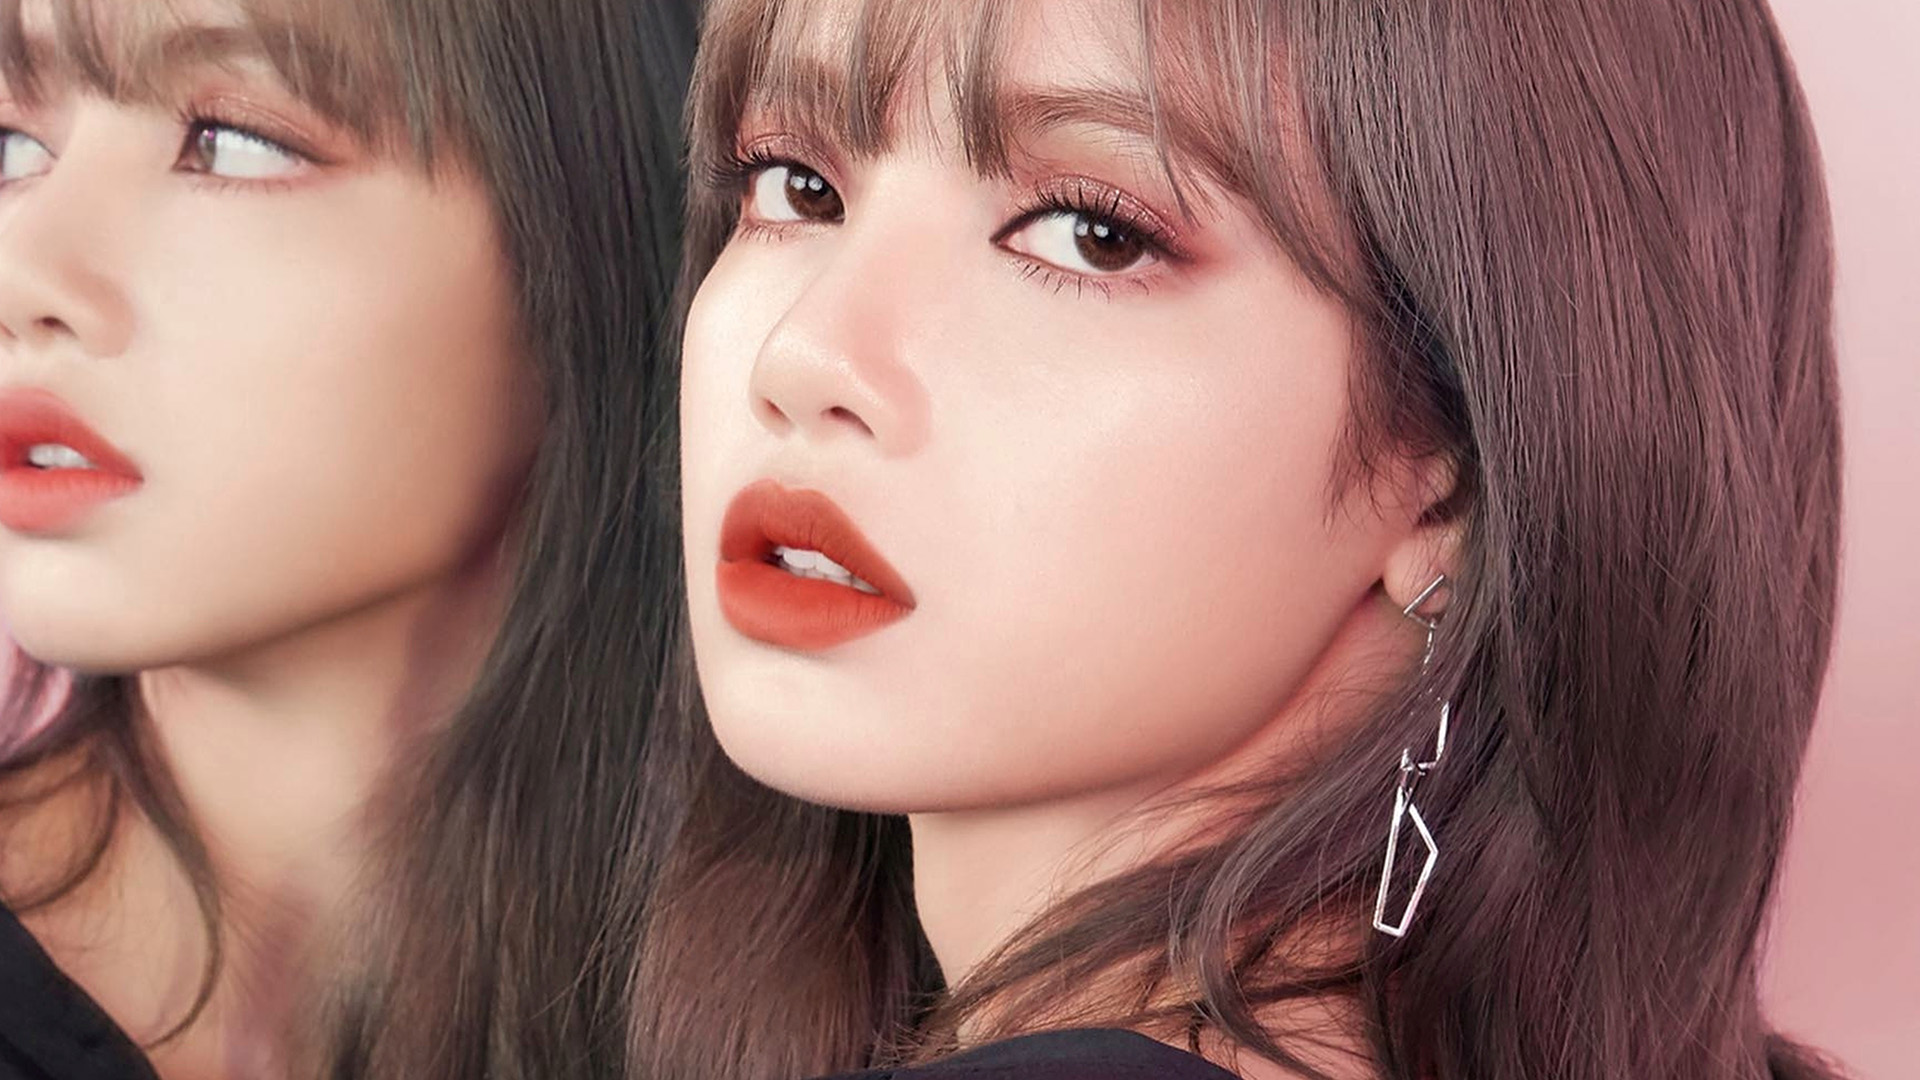 Hu21 Girl Kpop Lisa Blackpink Wallpaper